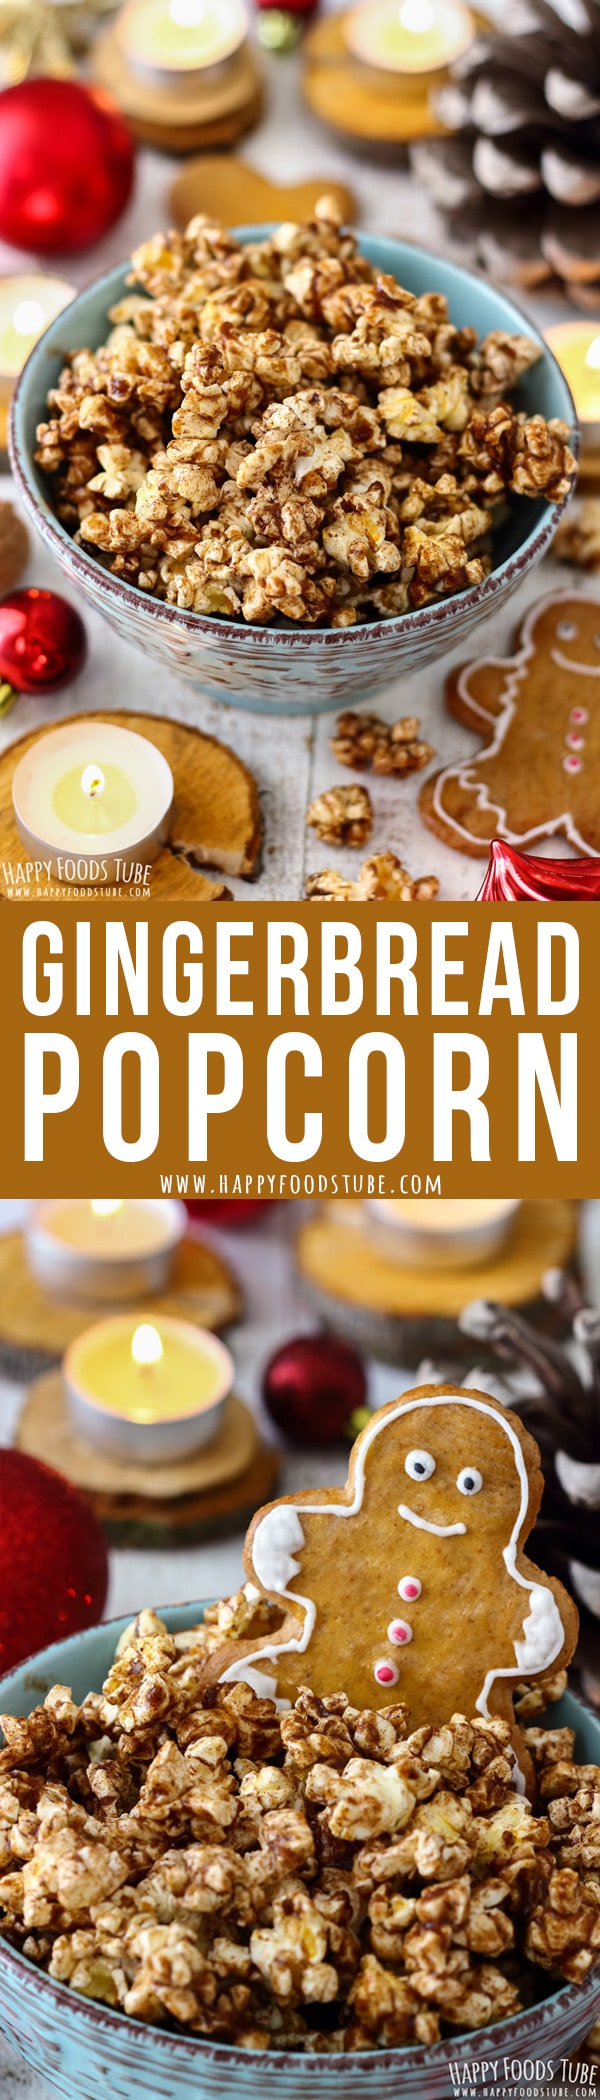 This gingerbread popcorn is sticky, sweet and ready in 5 minutes. If you like the gingerbread flavor, then this Christmas popcorn should be on your Holiday menu. #gingerbread #popcorn #holidays #christmas #desserts #snacks #holidayrecipes #christmasrecipes